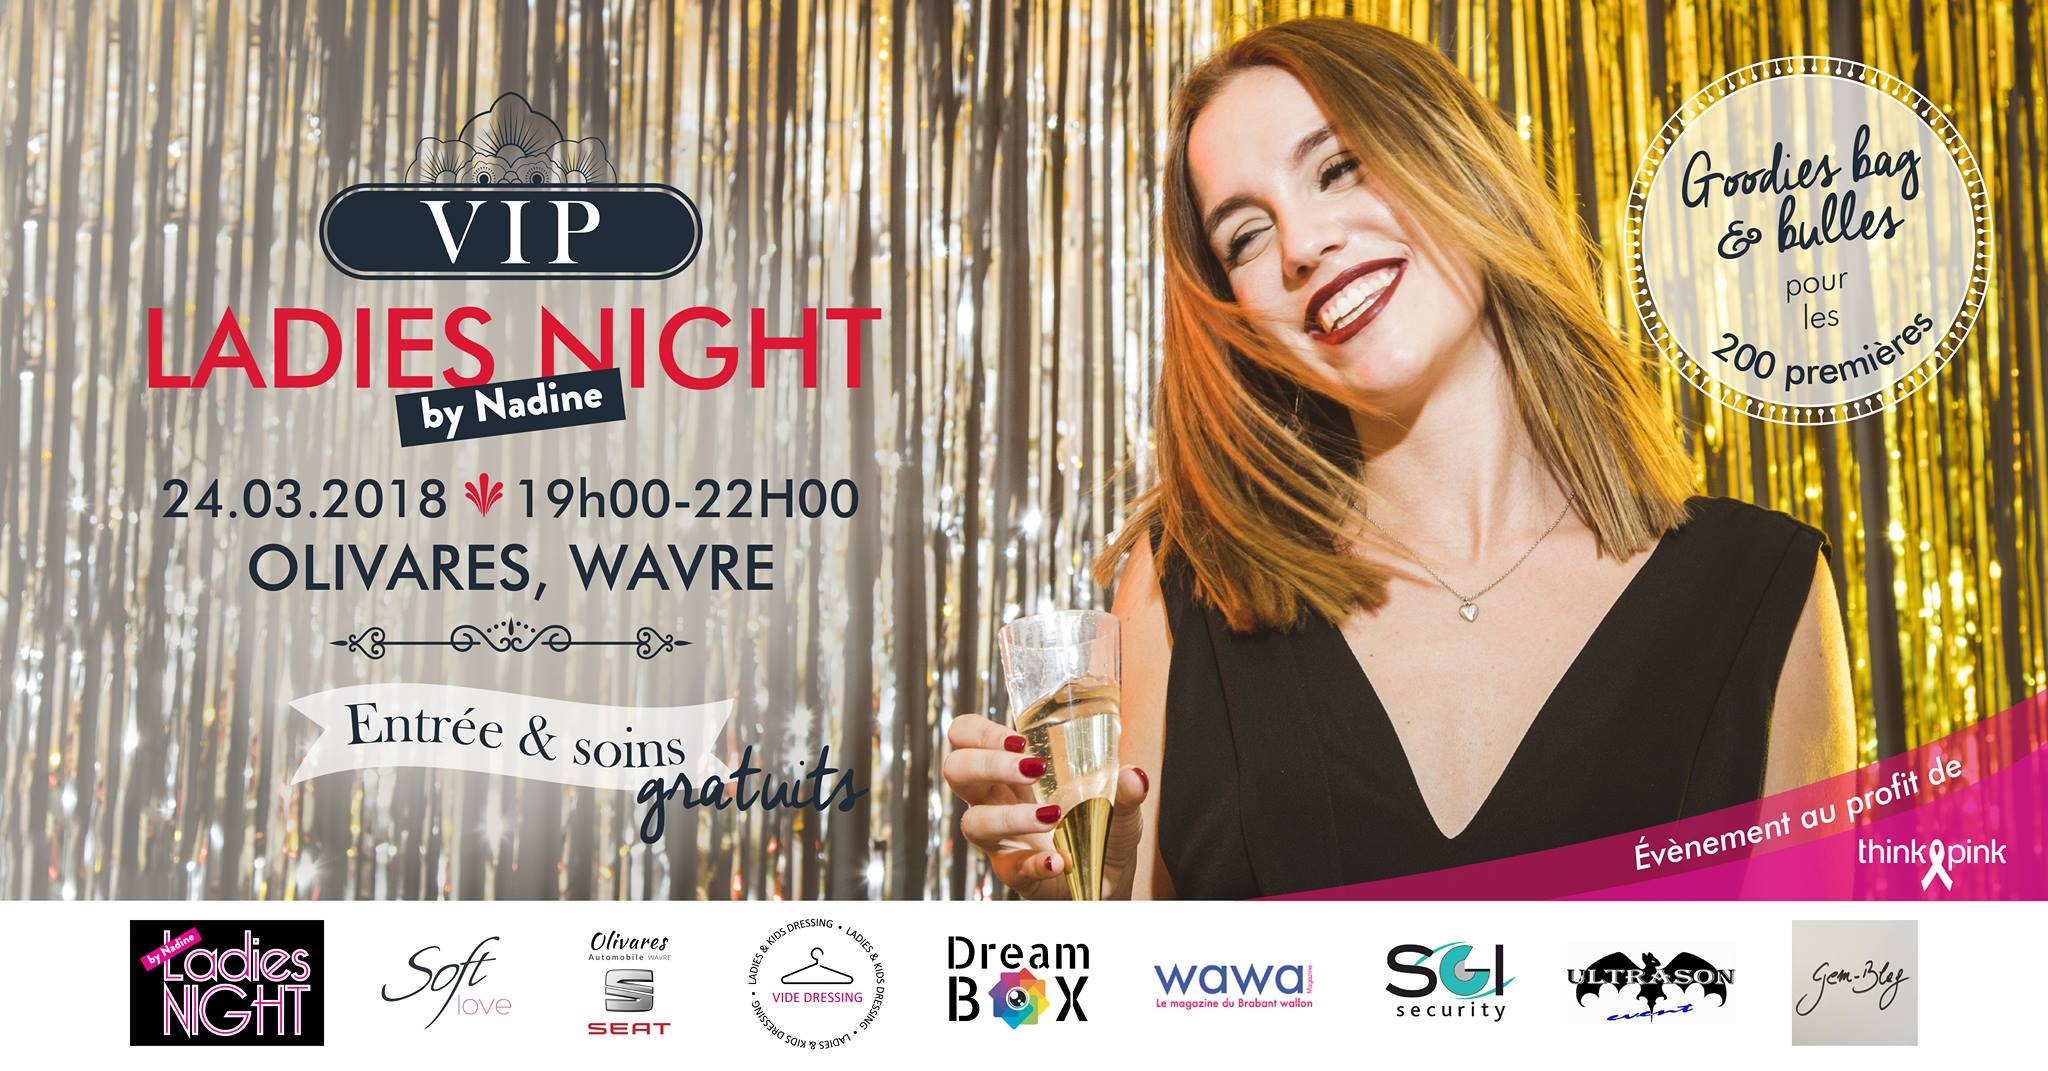 Les VIP ladies night de Nadine reviennent !